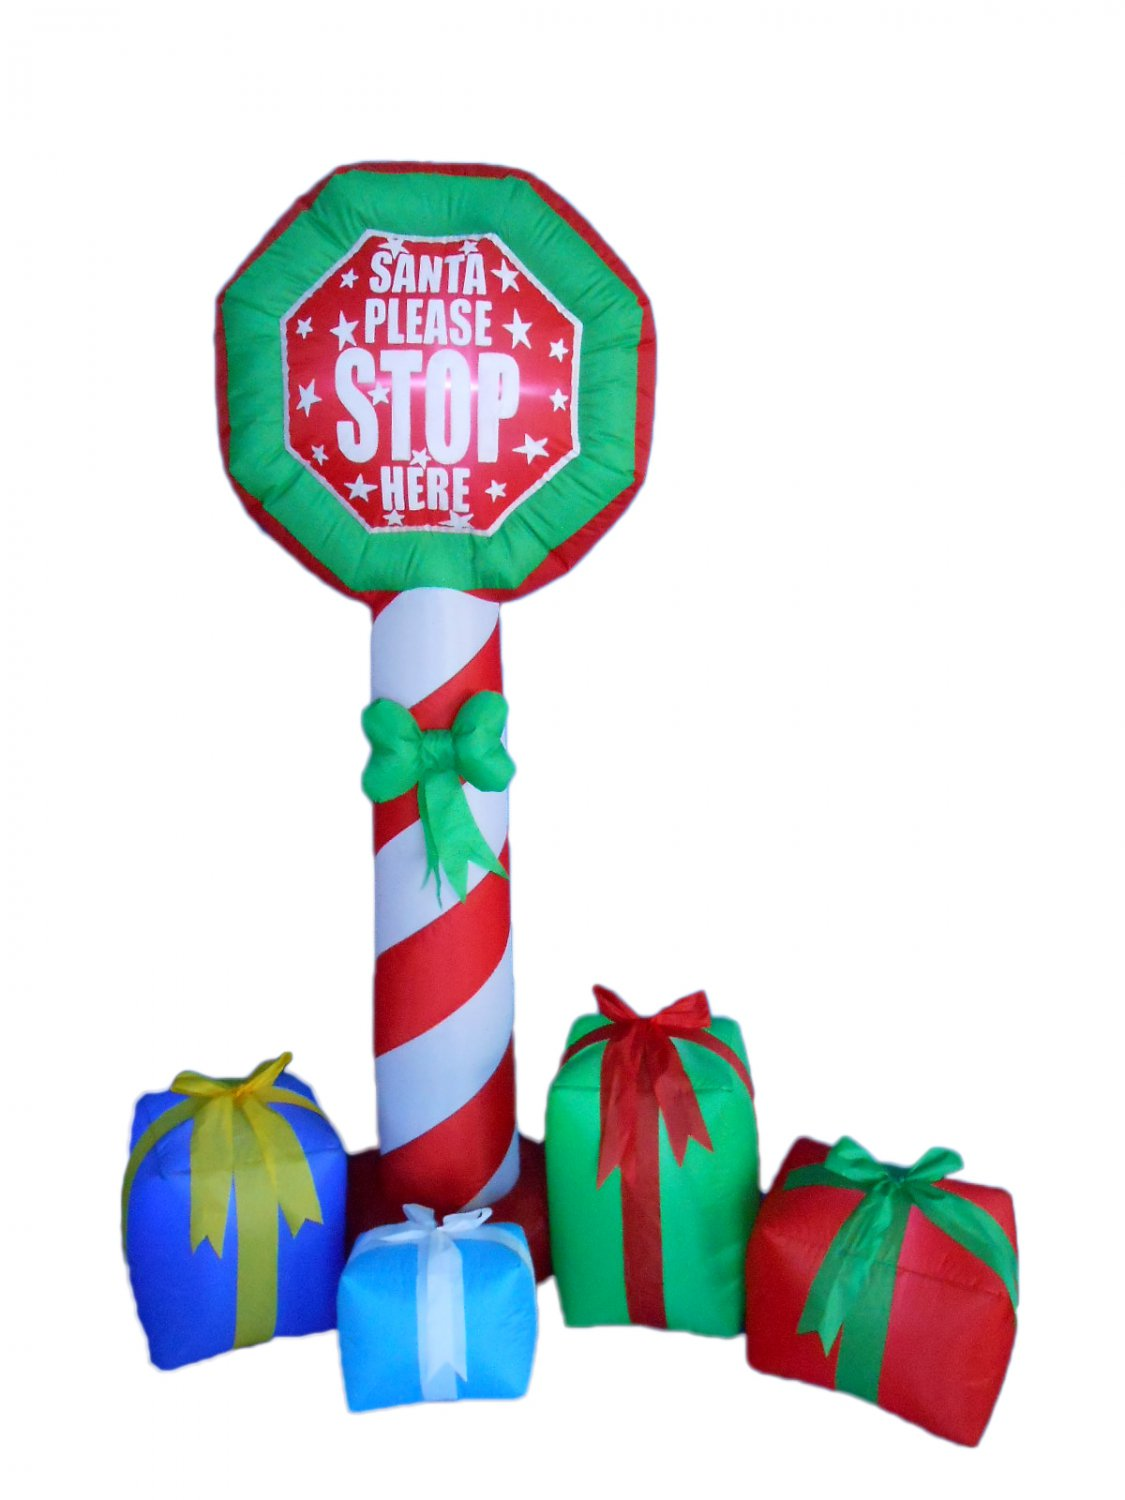 6 Foot Tall Christmas Inflatable Stop Sign Gift Boxes Yard Decoration #263